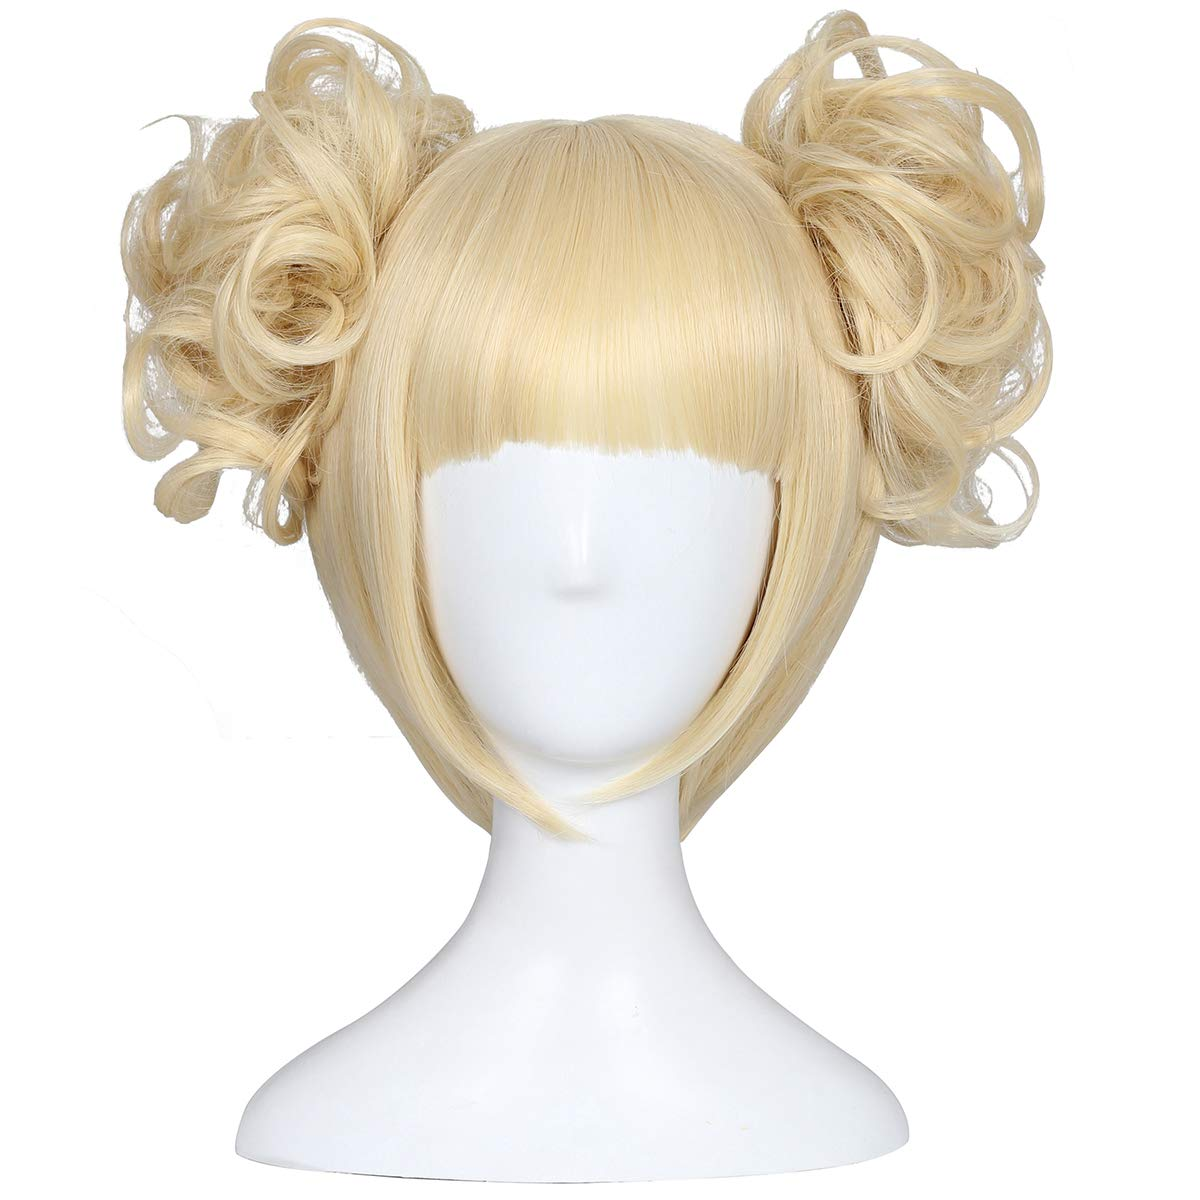 ColorGround Blonde Cosplay Wig and 2 Detachable Buns with Clips by ColorGround